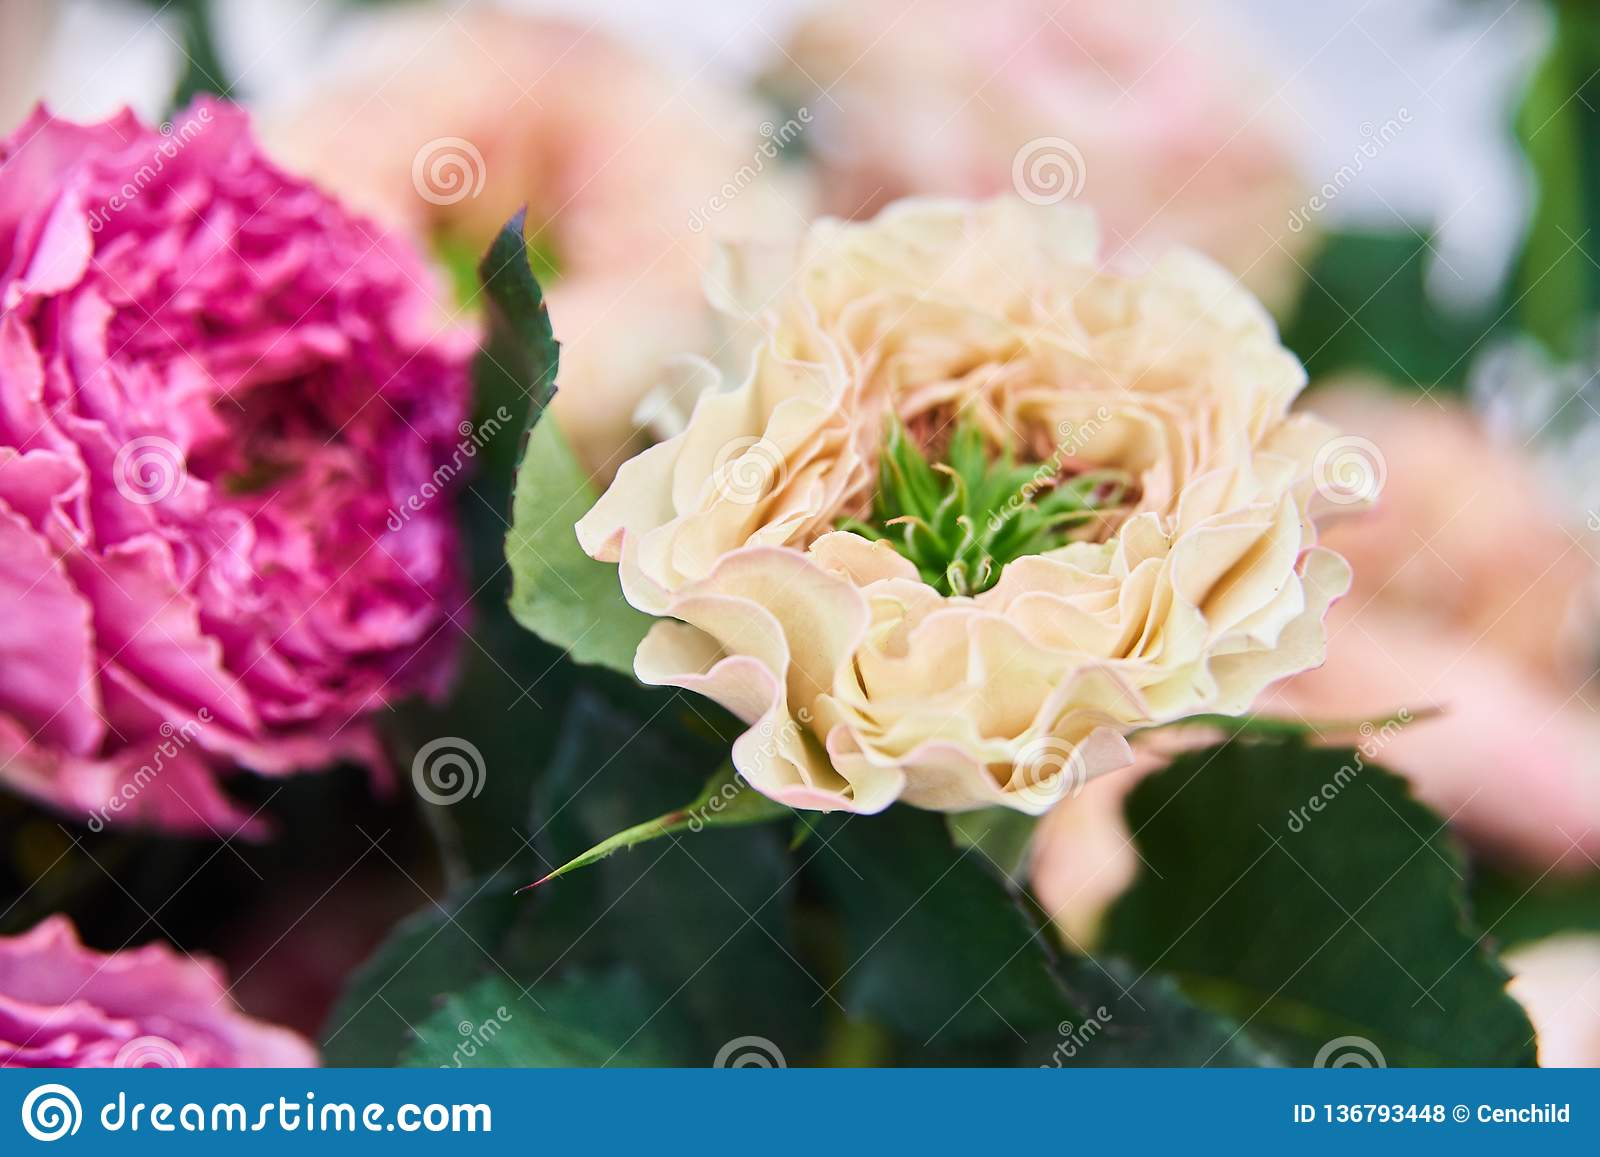 Fresh Cut Roses And Arrangements In Florist Shop Tracking